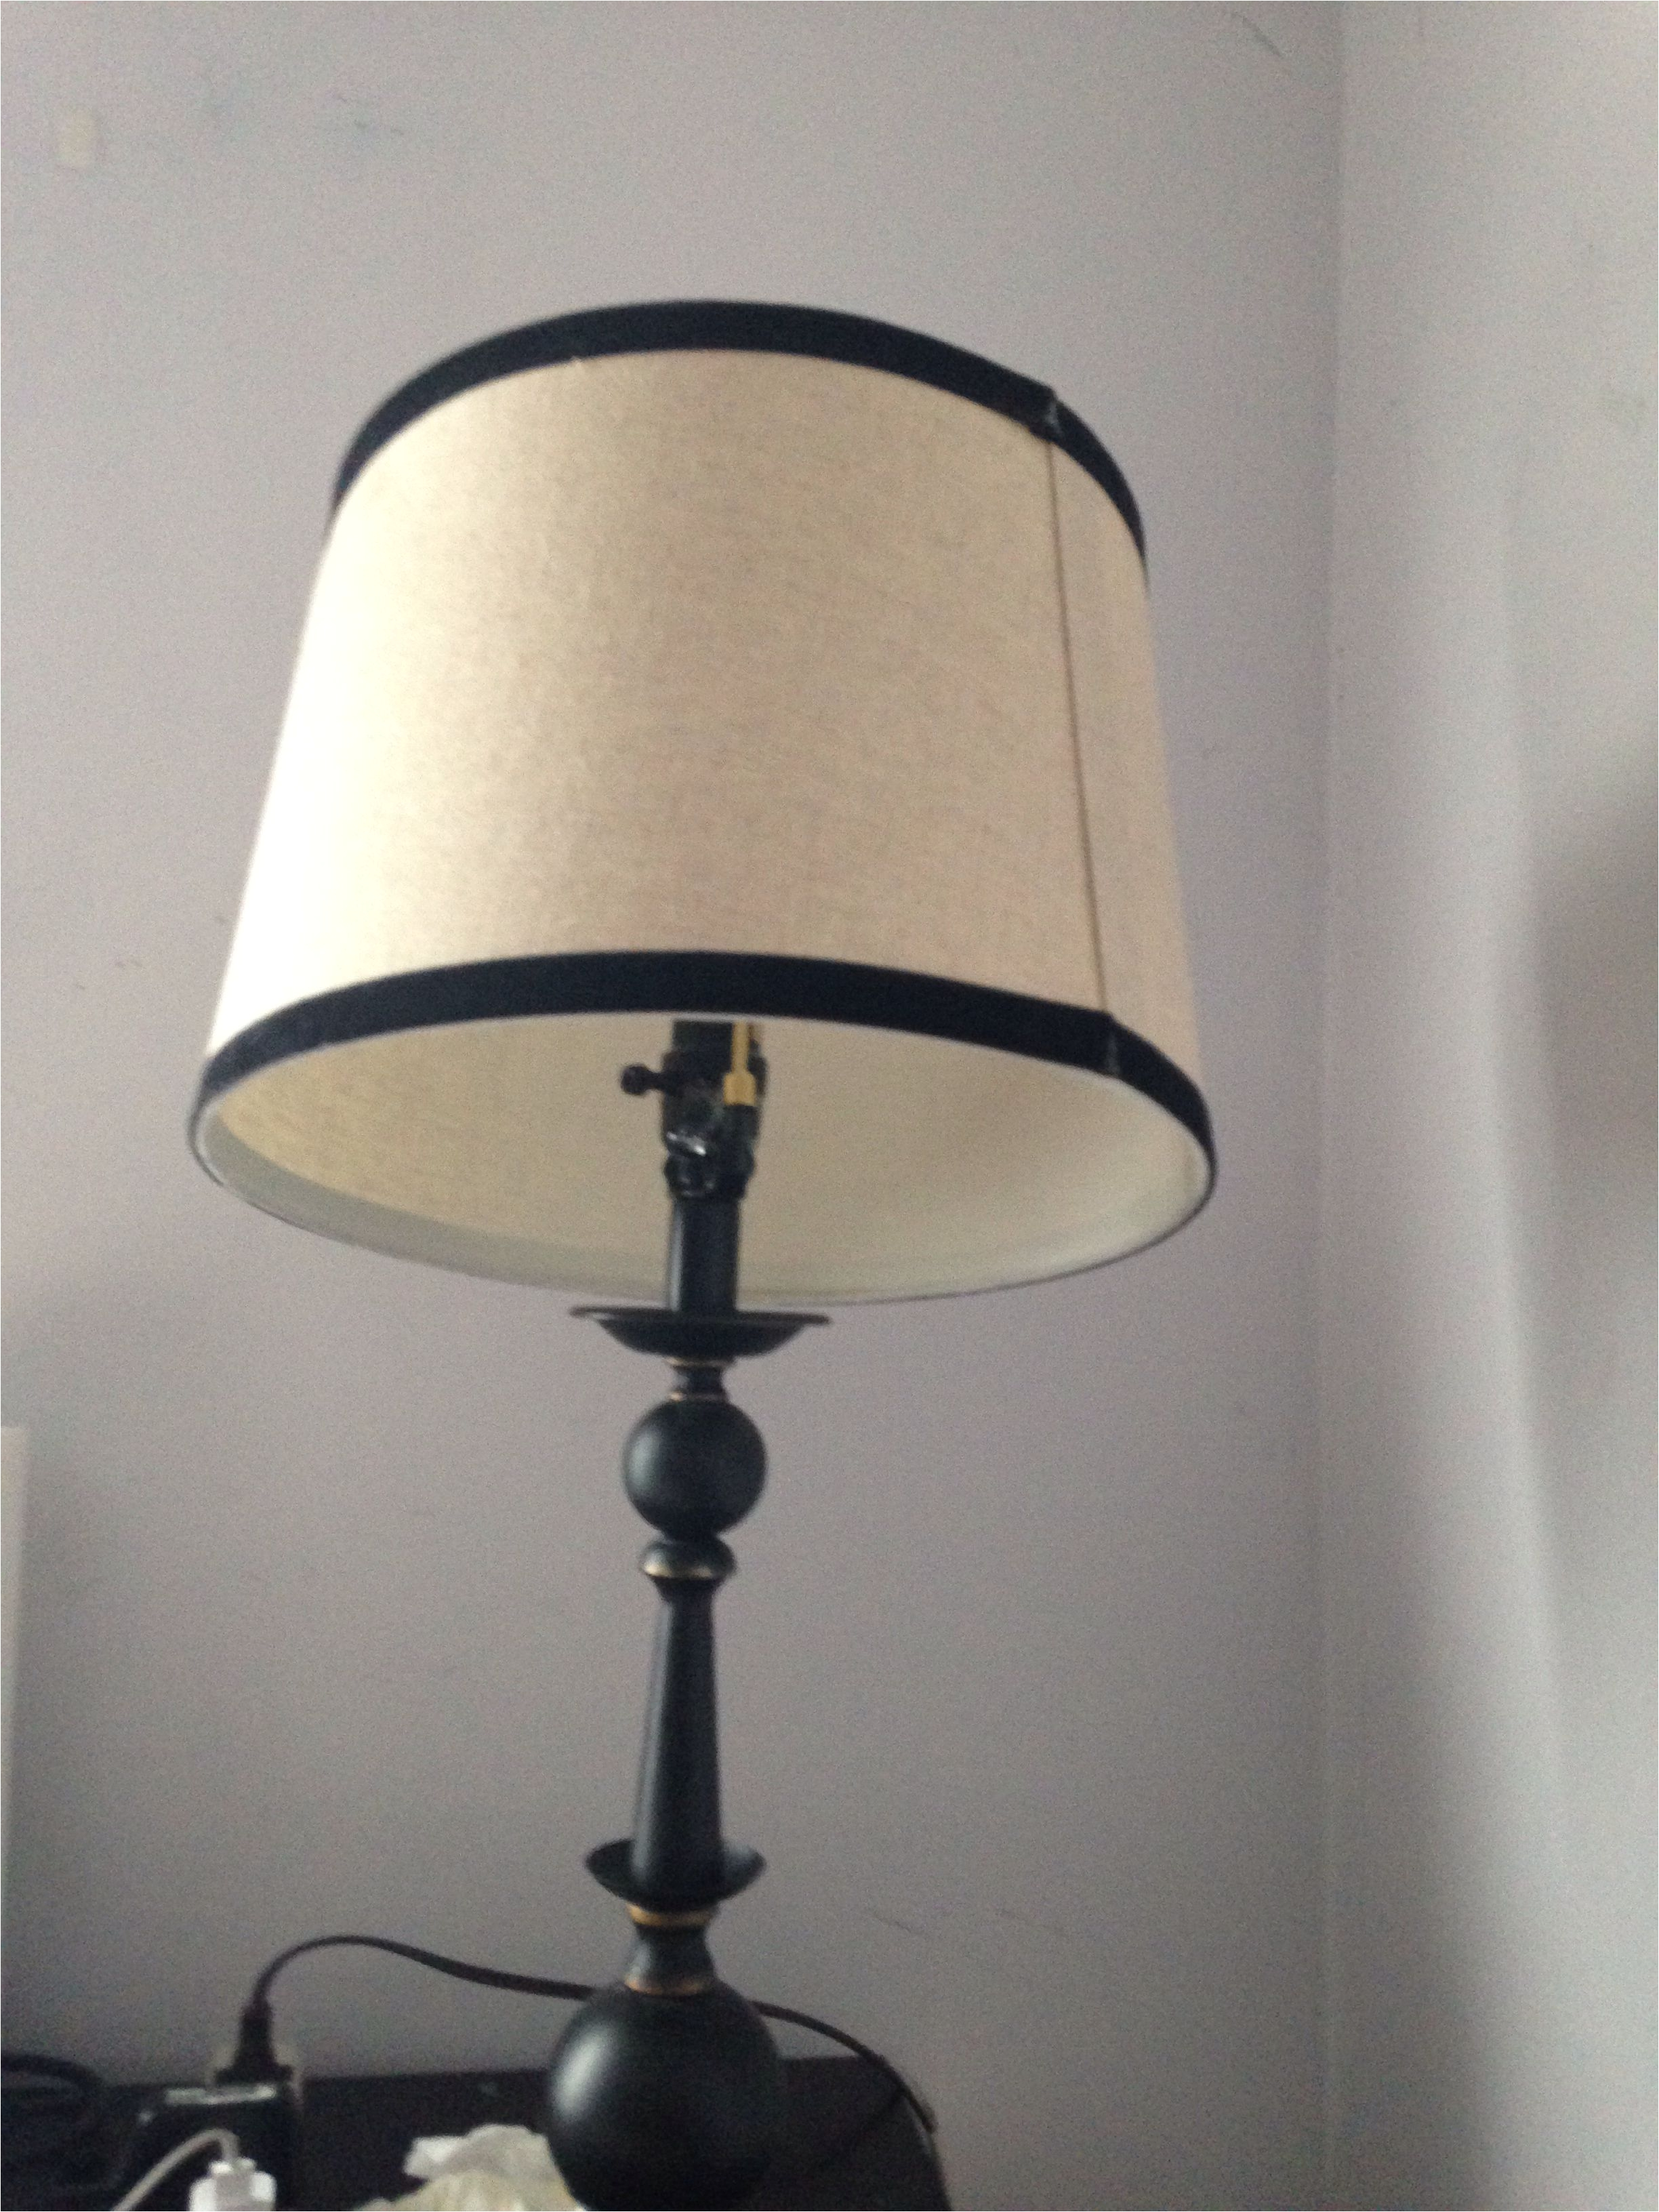 lampshade wont stay straight